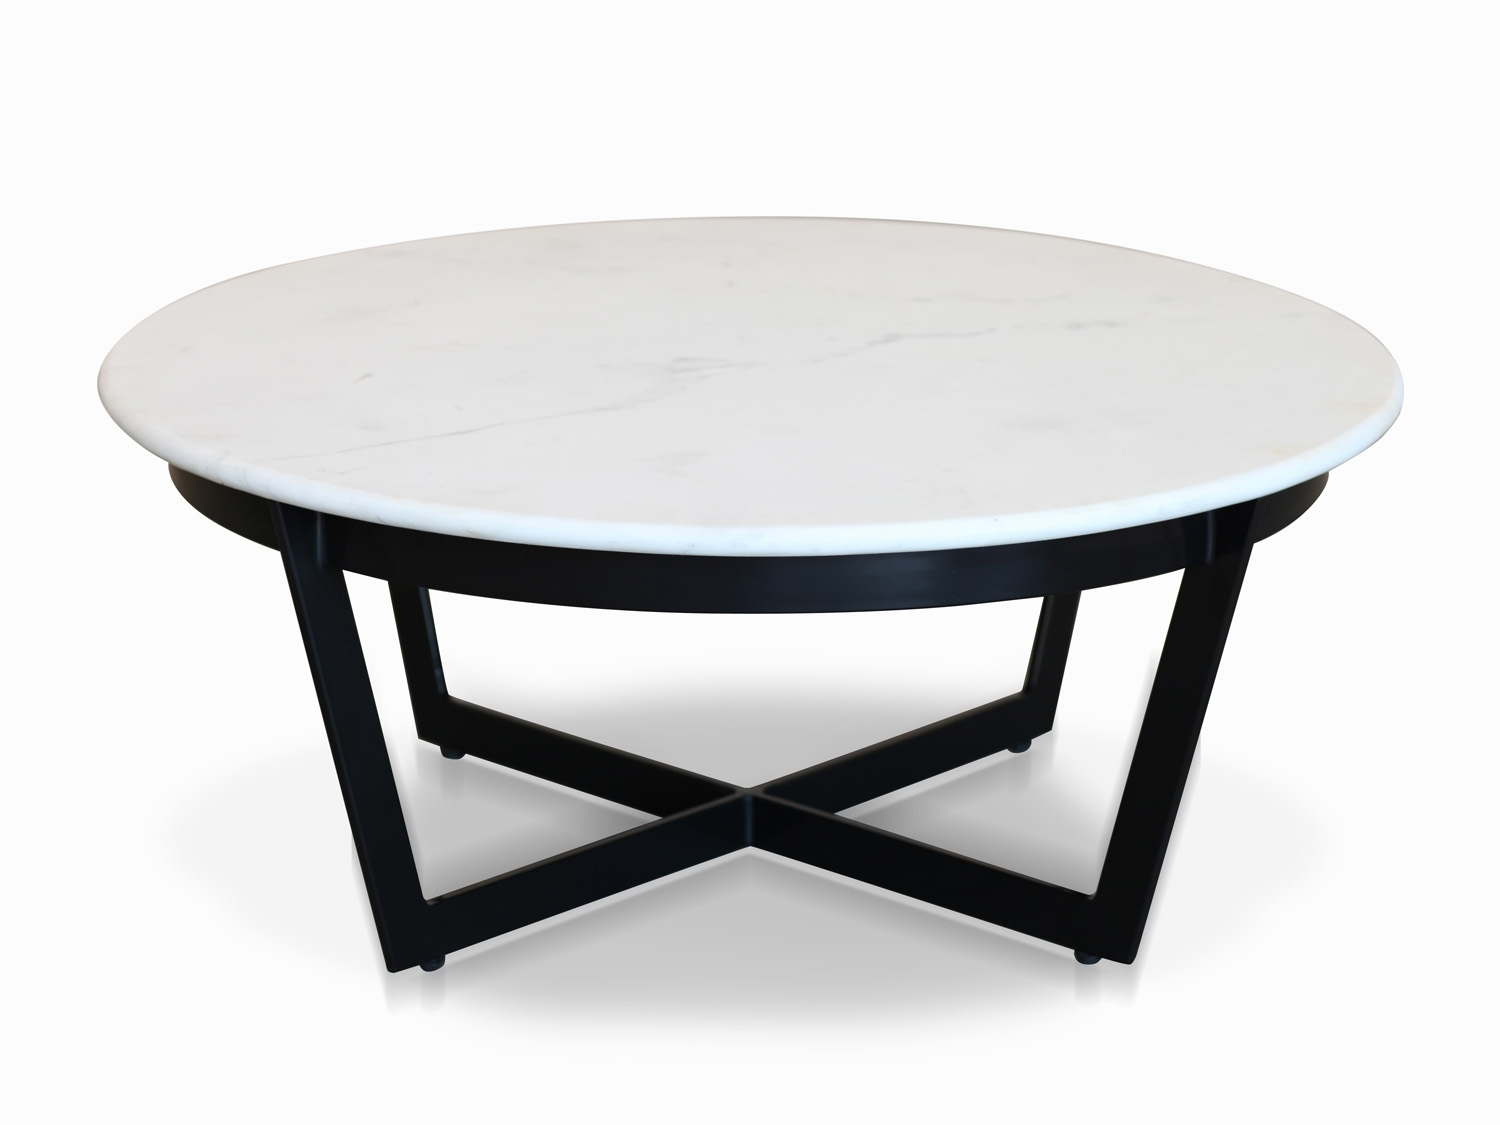 Decoration In Marble Round Coffee Table With Coffee Table Appealing Within Smart Round Marble Top Coffee Tables (View 9 of 30)